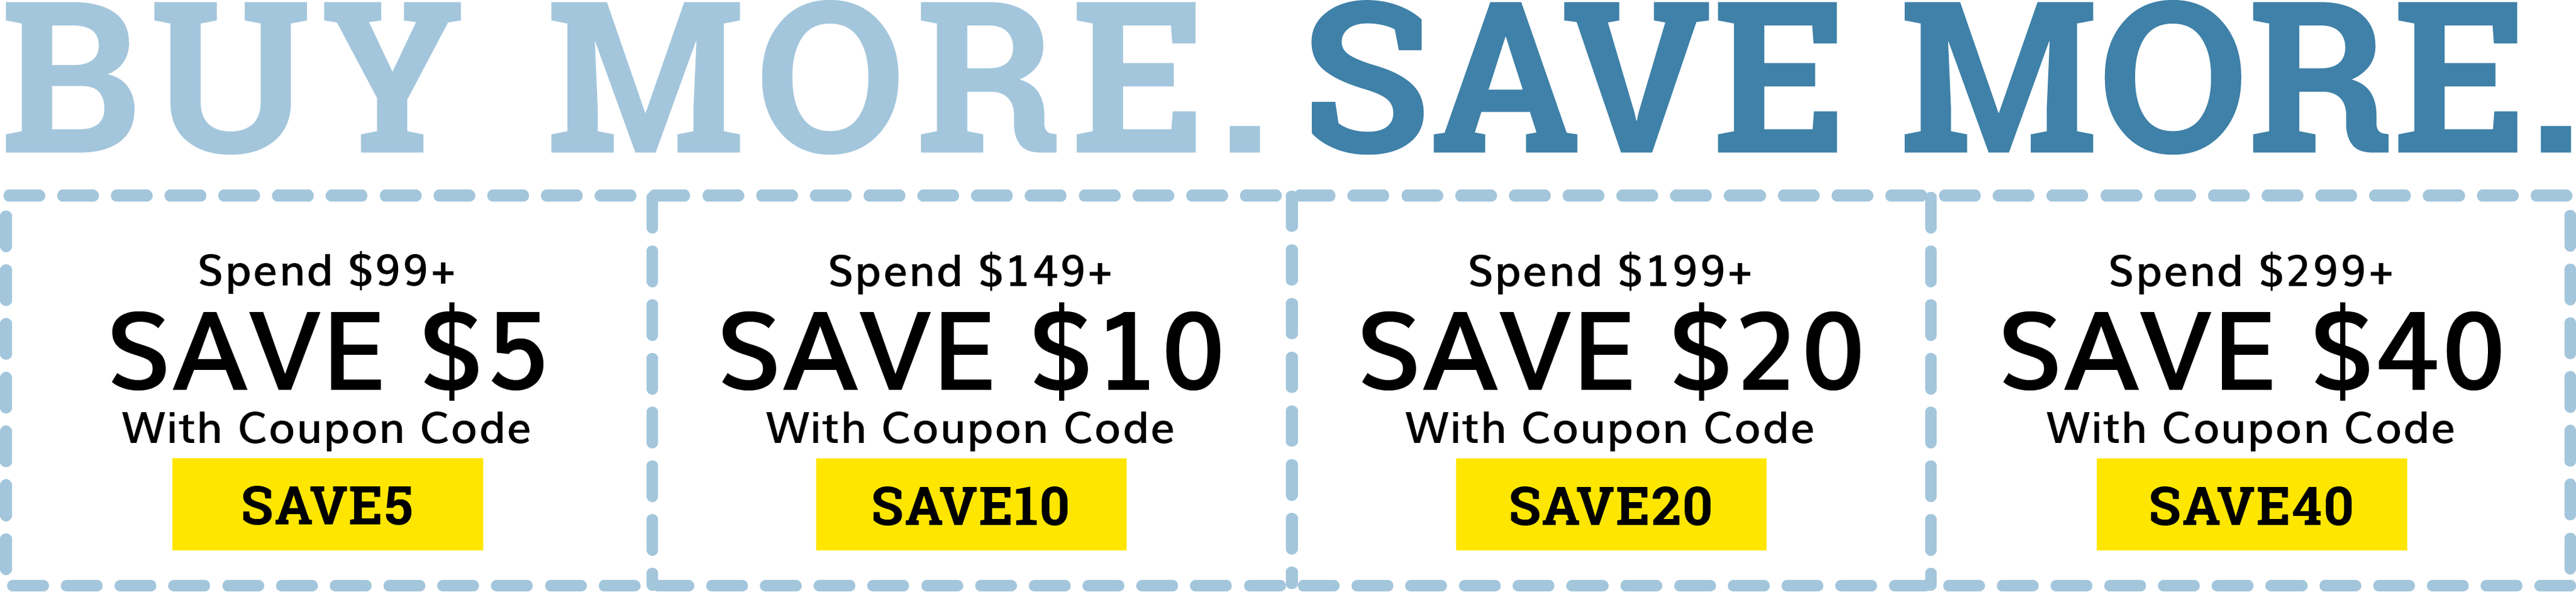 Buy More Save More Discounts